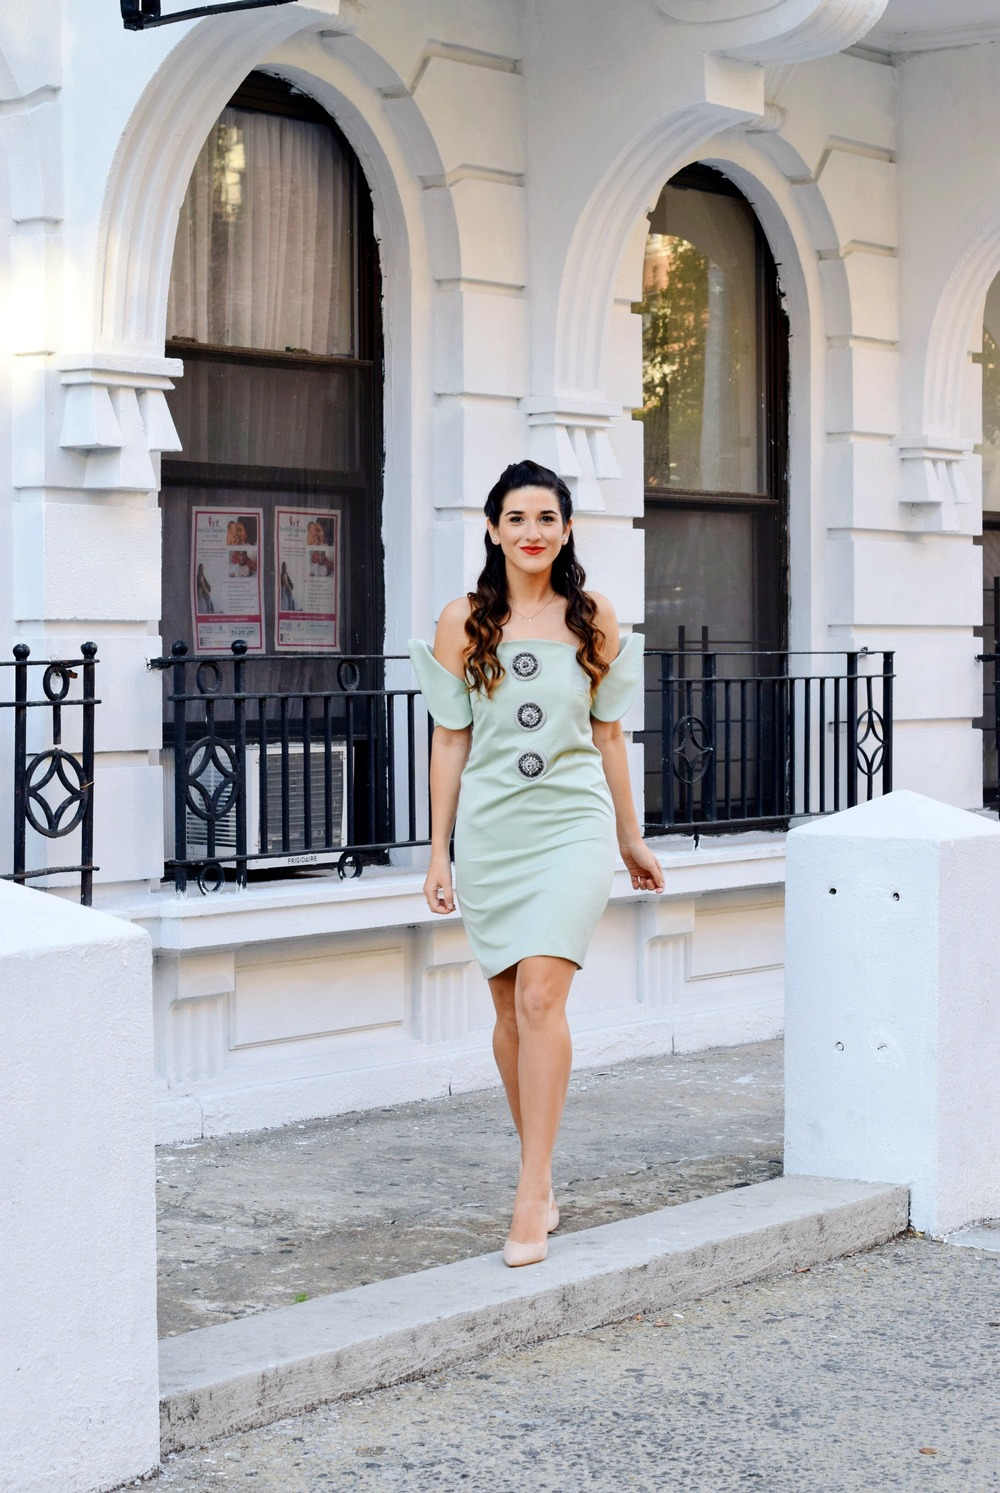 Sage Terno Cocktail Dress Mestiza NY Louboutins & Love Fashion Blog Esther Santer Street Style Blogger NYC Photoshoot Earrings Steve Madden Heels Pumps Hair Brunette Model Girl Women Trendy Outfit OOTD Look Inspiration Inspo Shop Beauty Pretty Braids.JPG